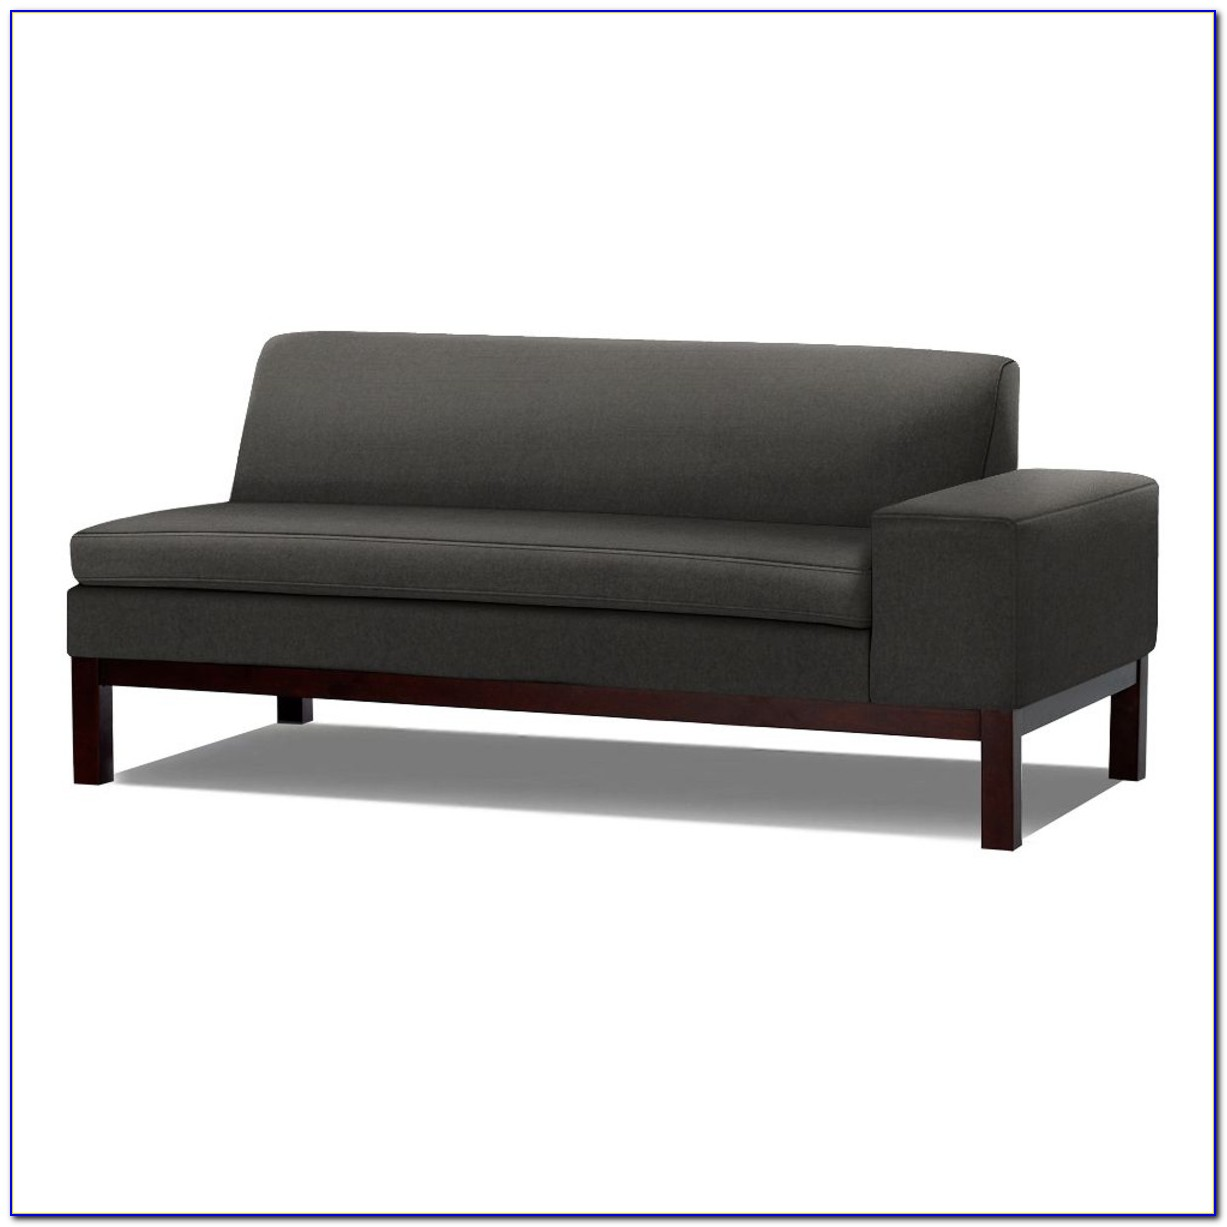 Build Your Own Sectional Sofa The Brick